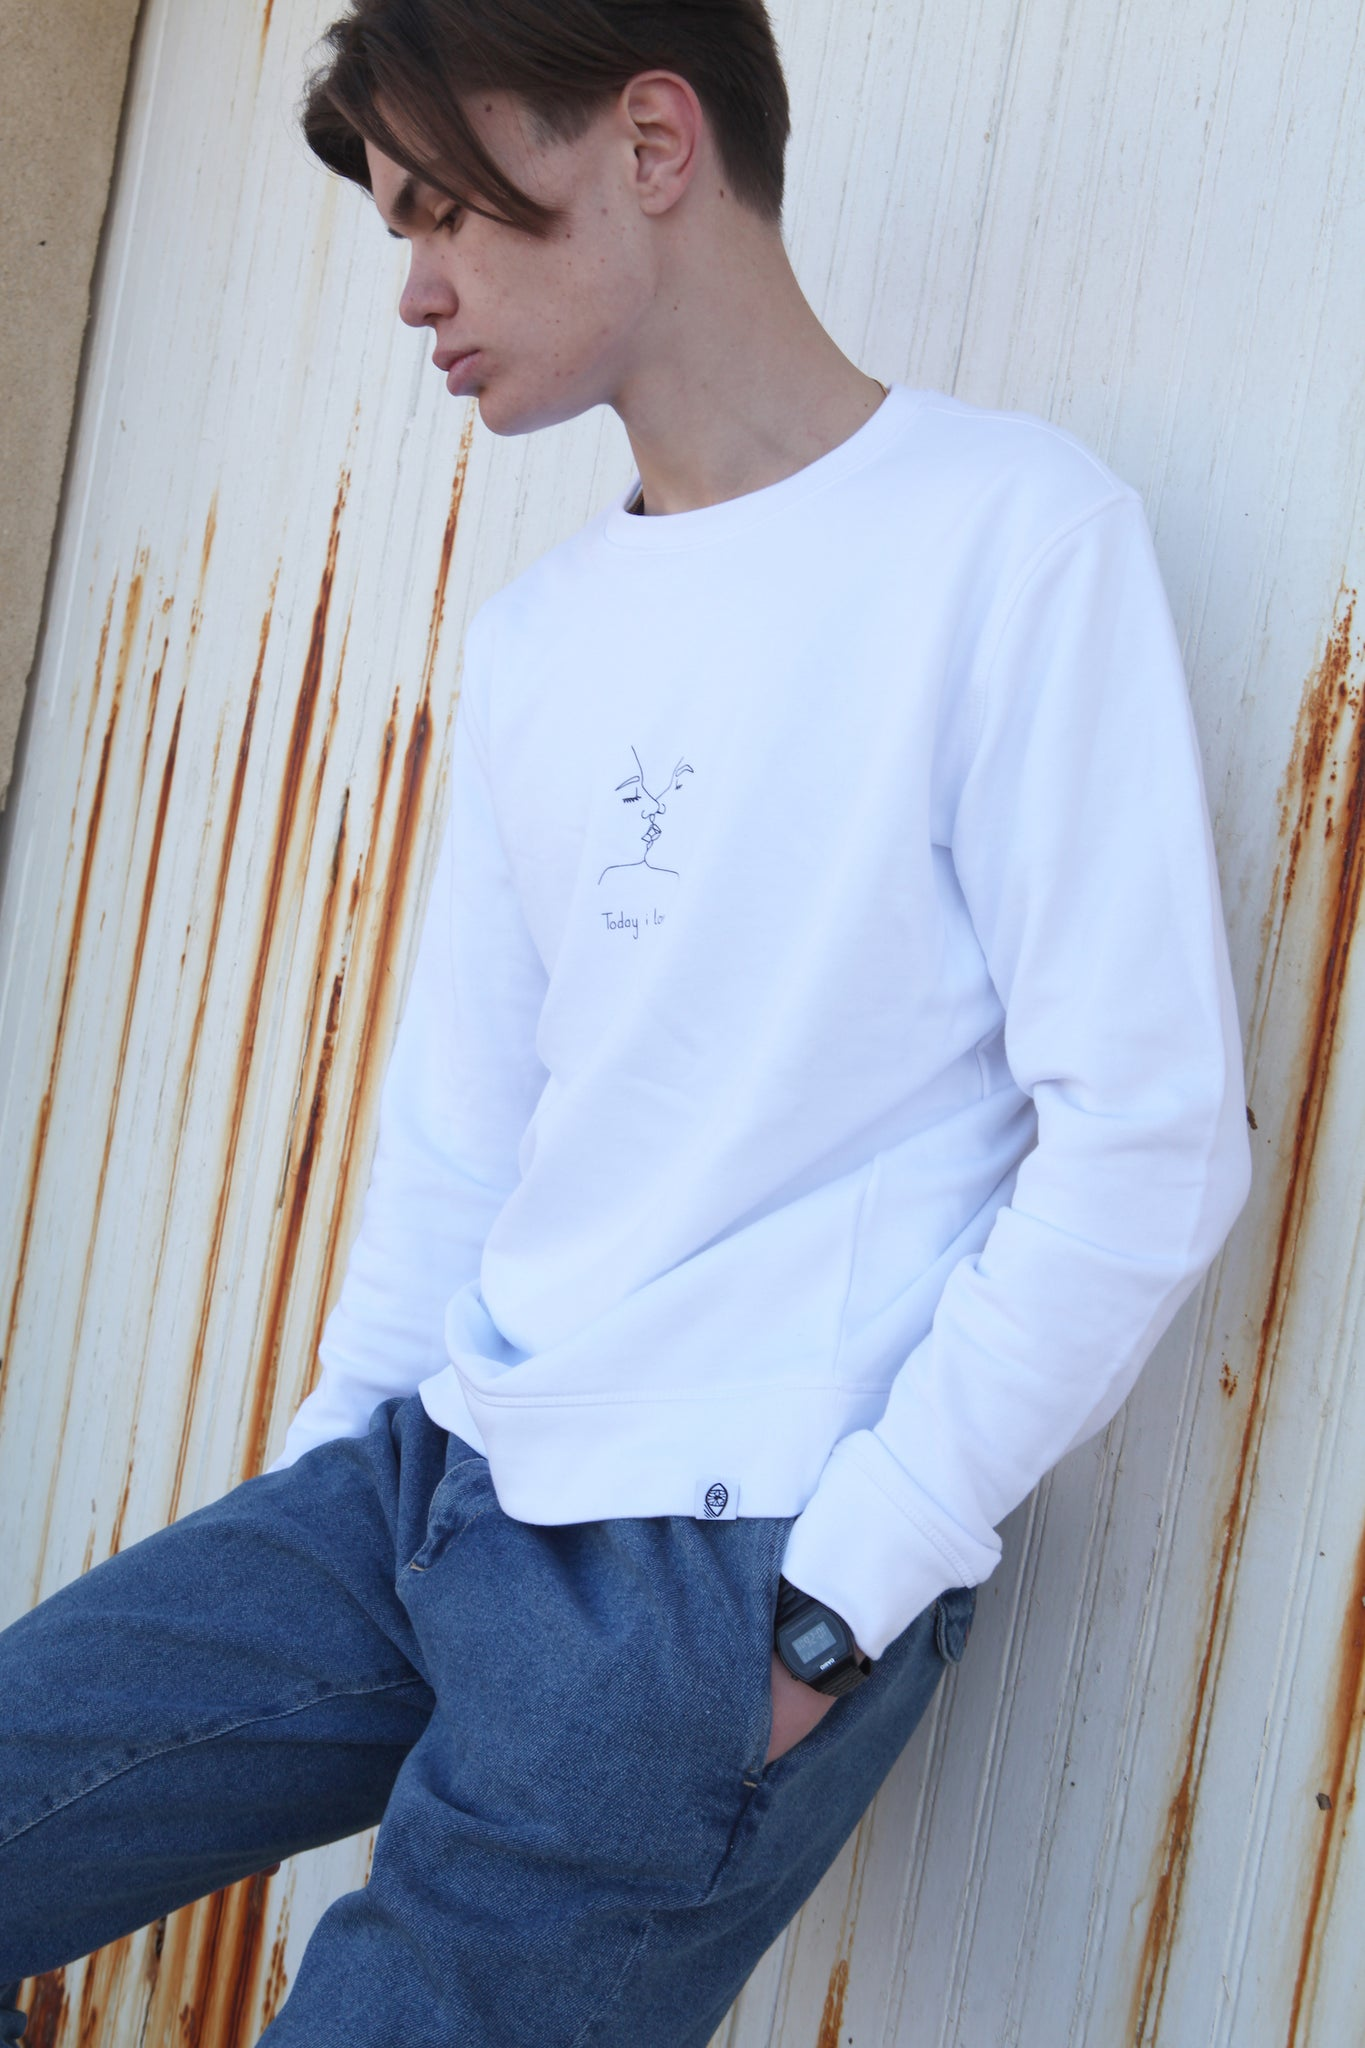 Sweatshirt Blanc - Today i love u - Mood Clothing